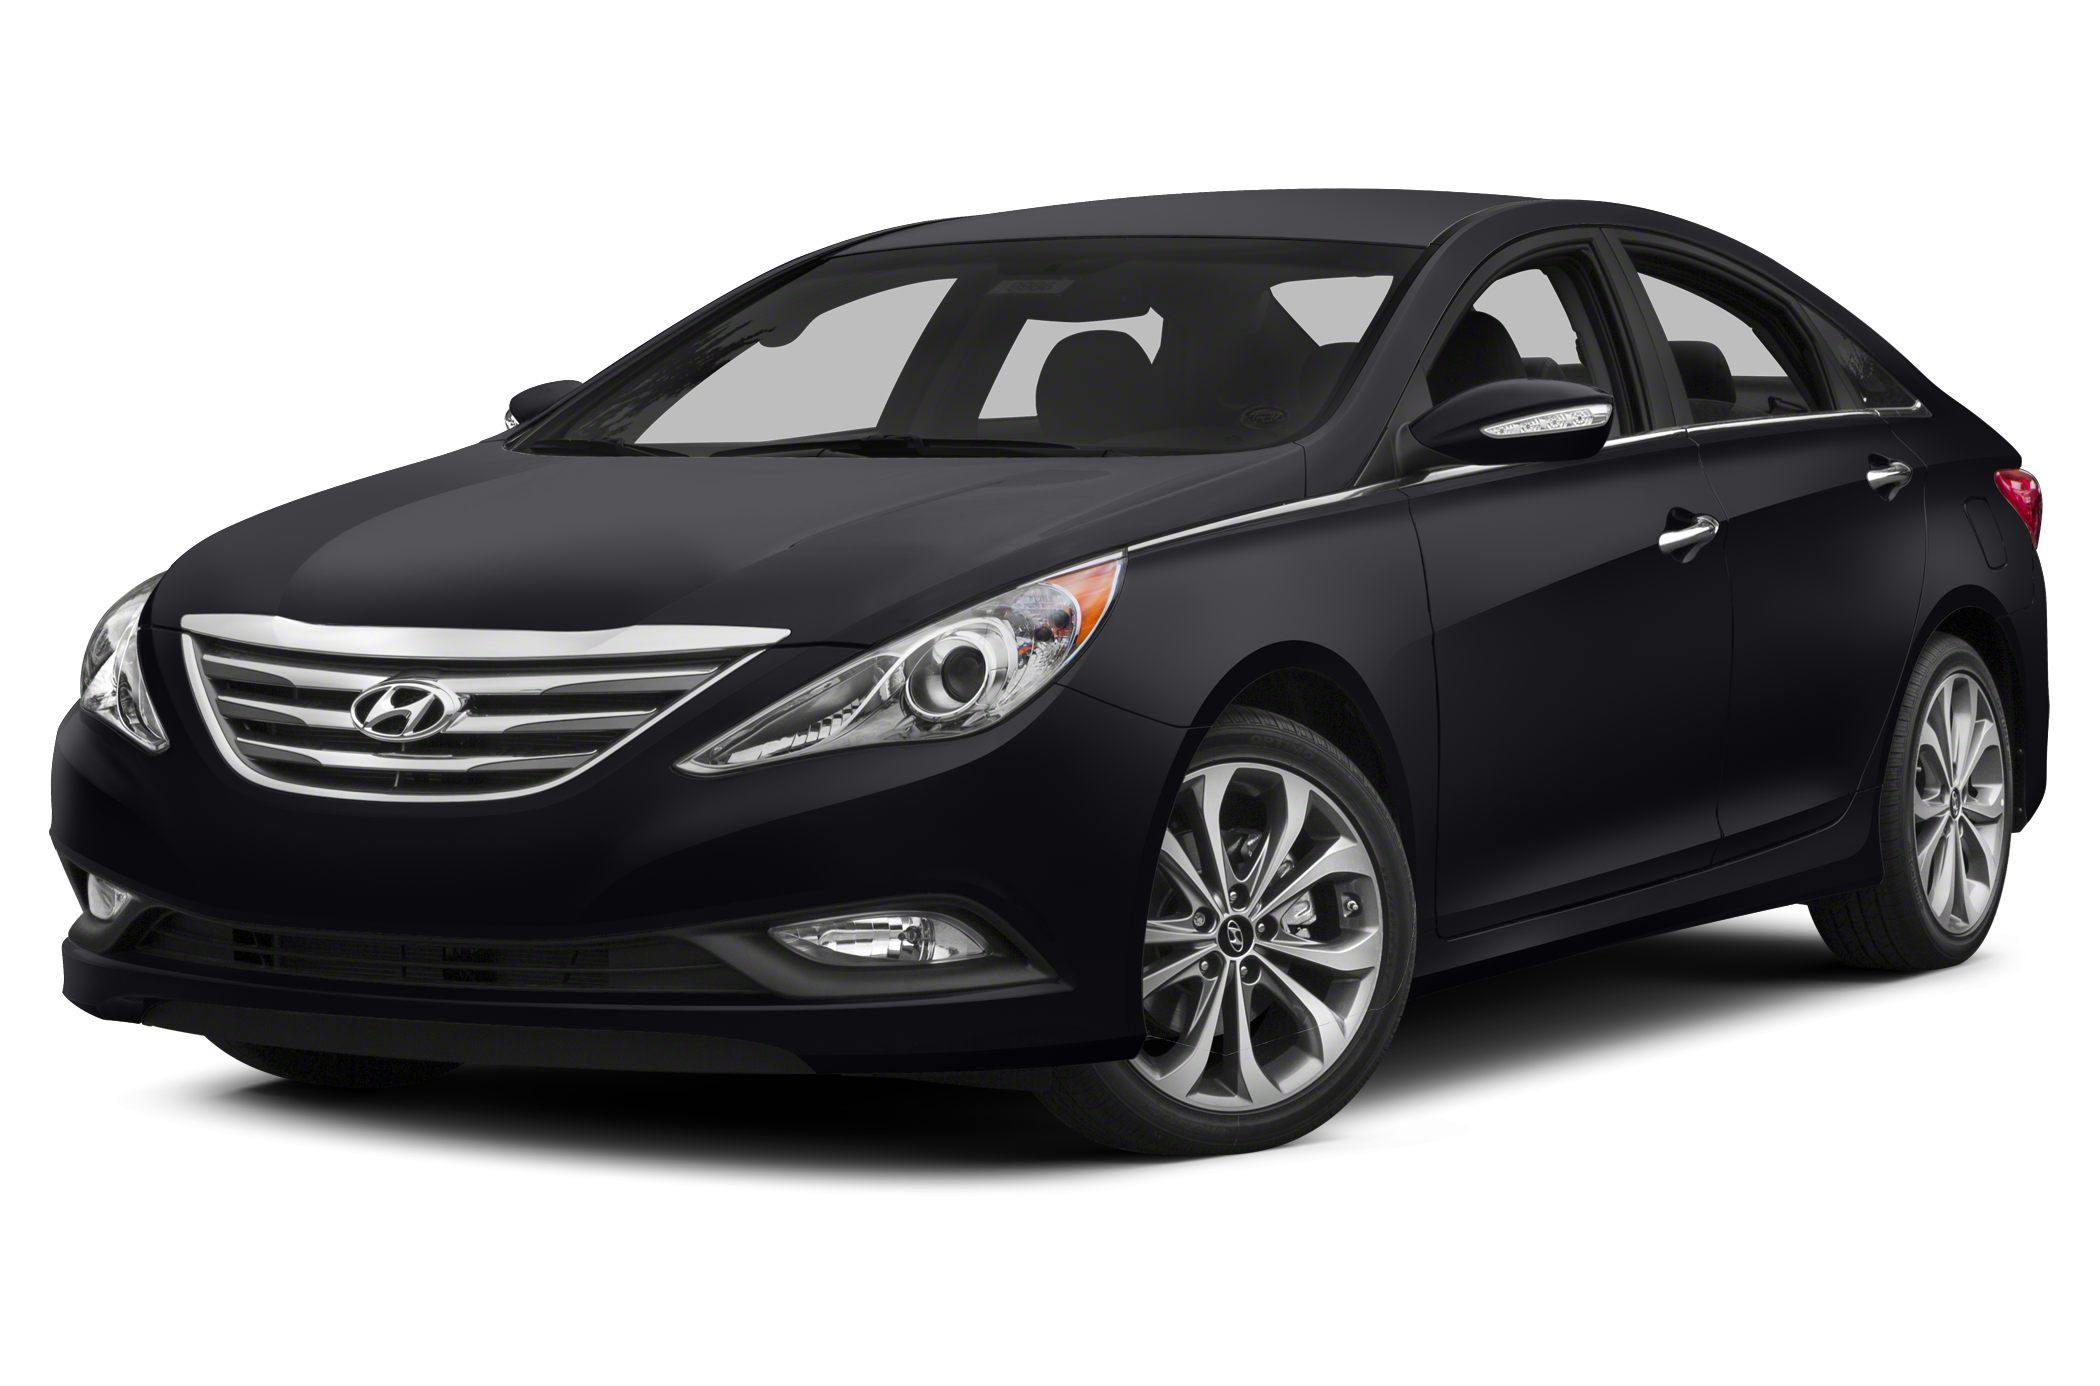 2014 Hyundai Sonata GLS Sedan for sale in Fort Smith for $17,995 with 23,851 miles.